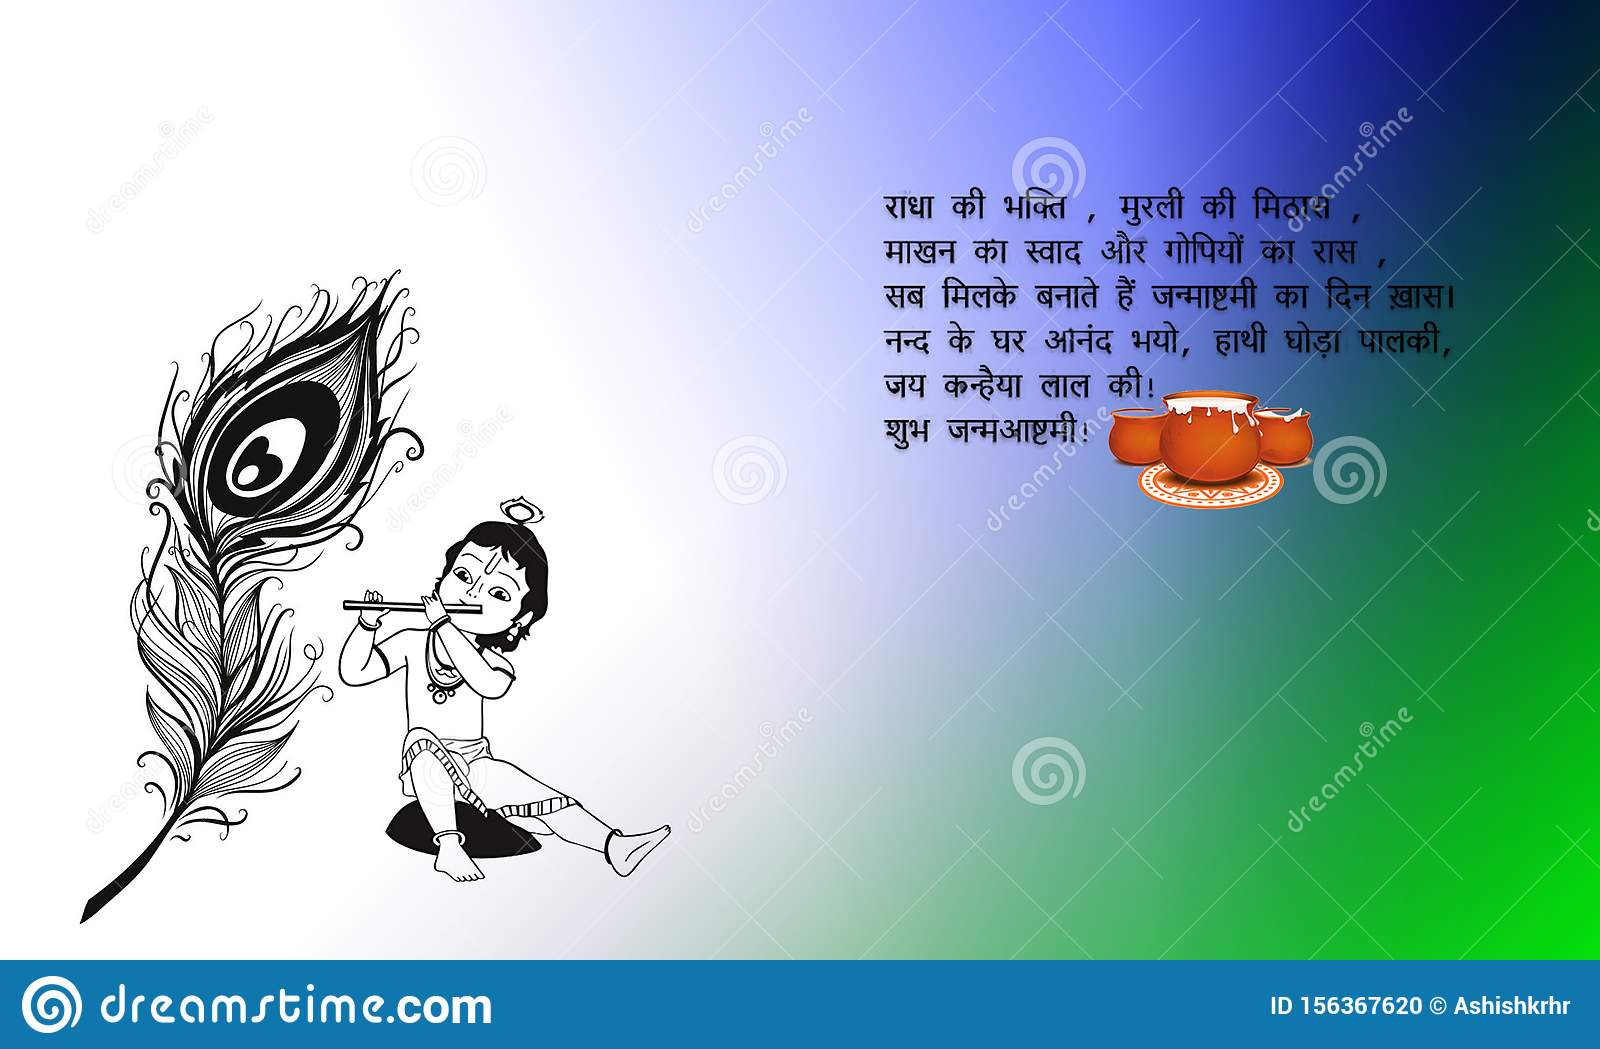 illustration janmashtami greetings hindi poem shayari lord krishna playing flute bansuri dahi handi beautiful wallpaper 156367620